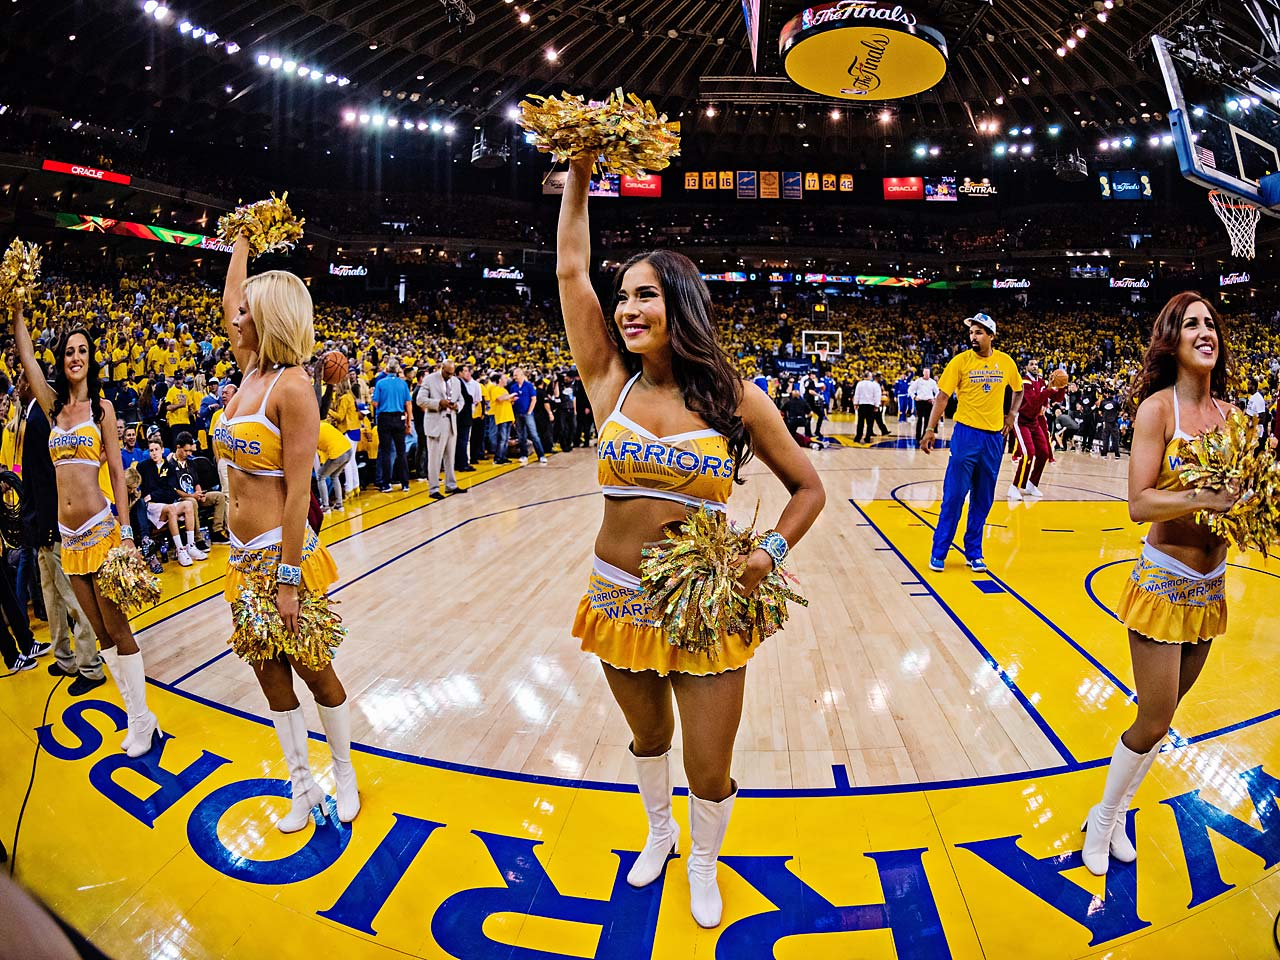 The Warriors cheerleaders.